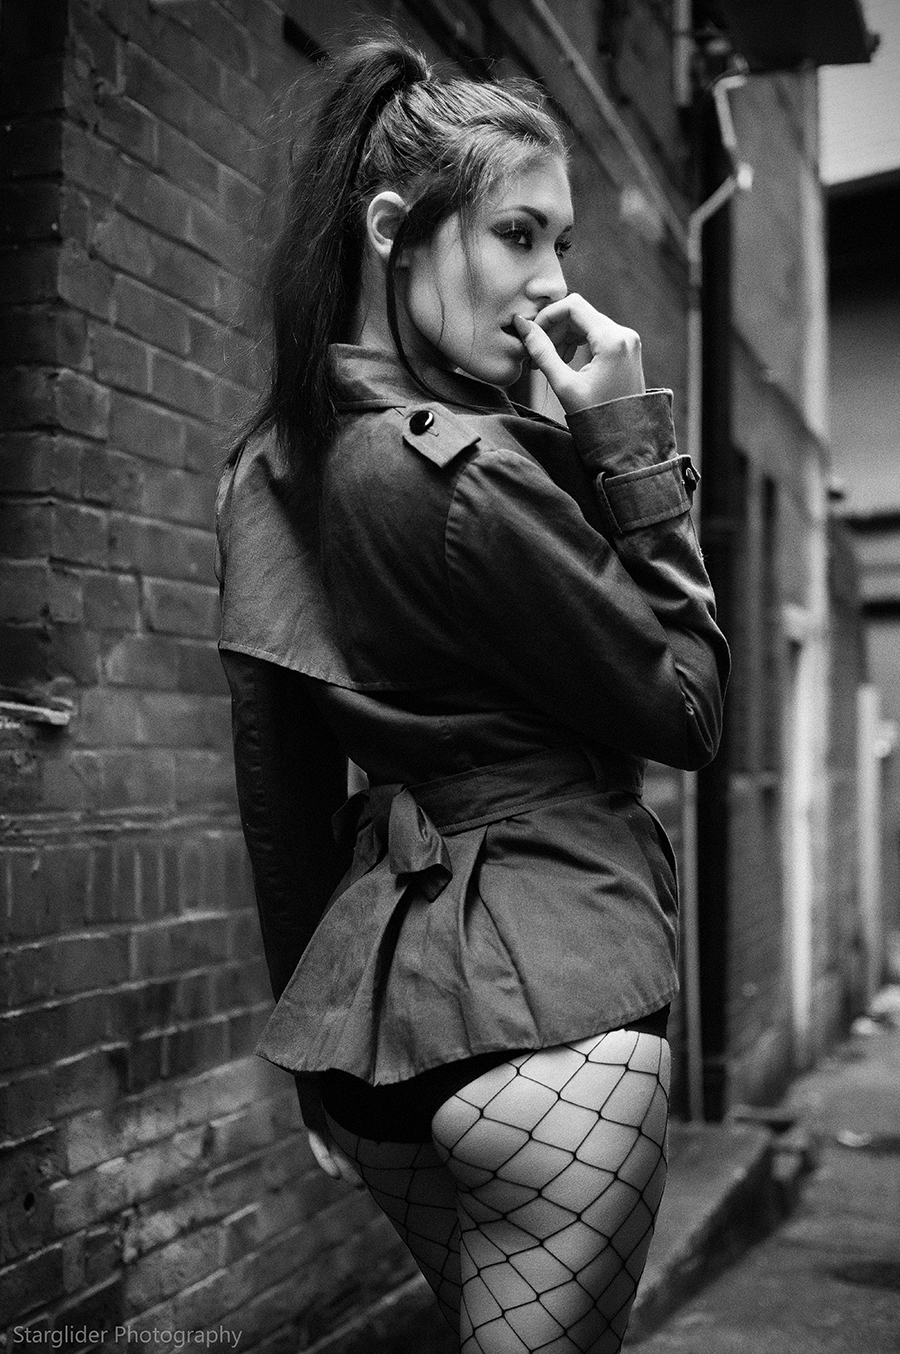 I got your back / Photography by Starglider Photography, Model Sophia West, Taken at Starglider Photography / Uploaded 15th October 2017 @ 06:16 PM